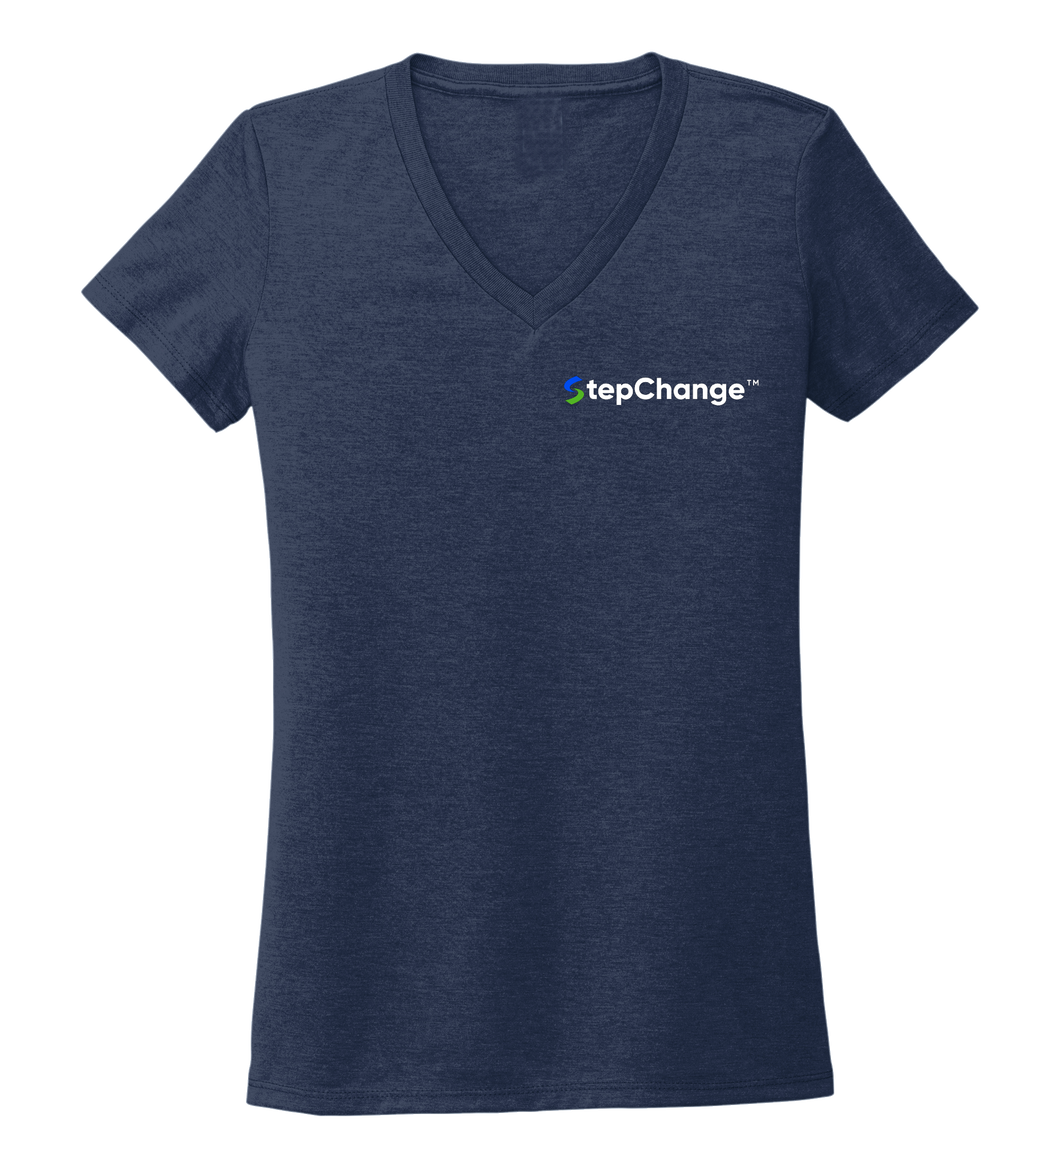 StepChange Women's V-neck T-shirt in Deep Sea Blue